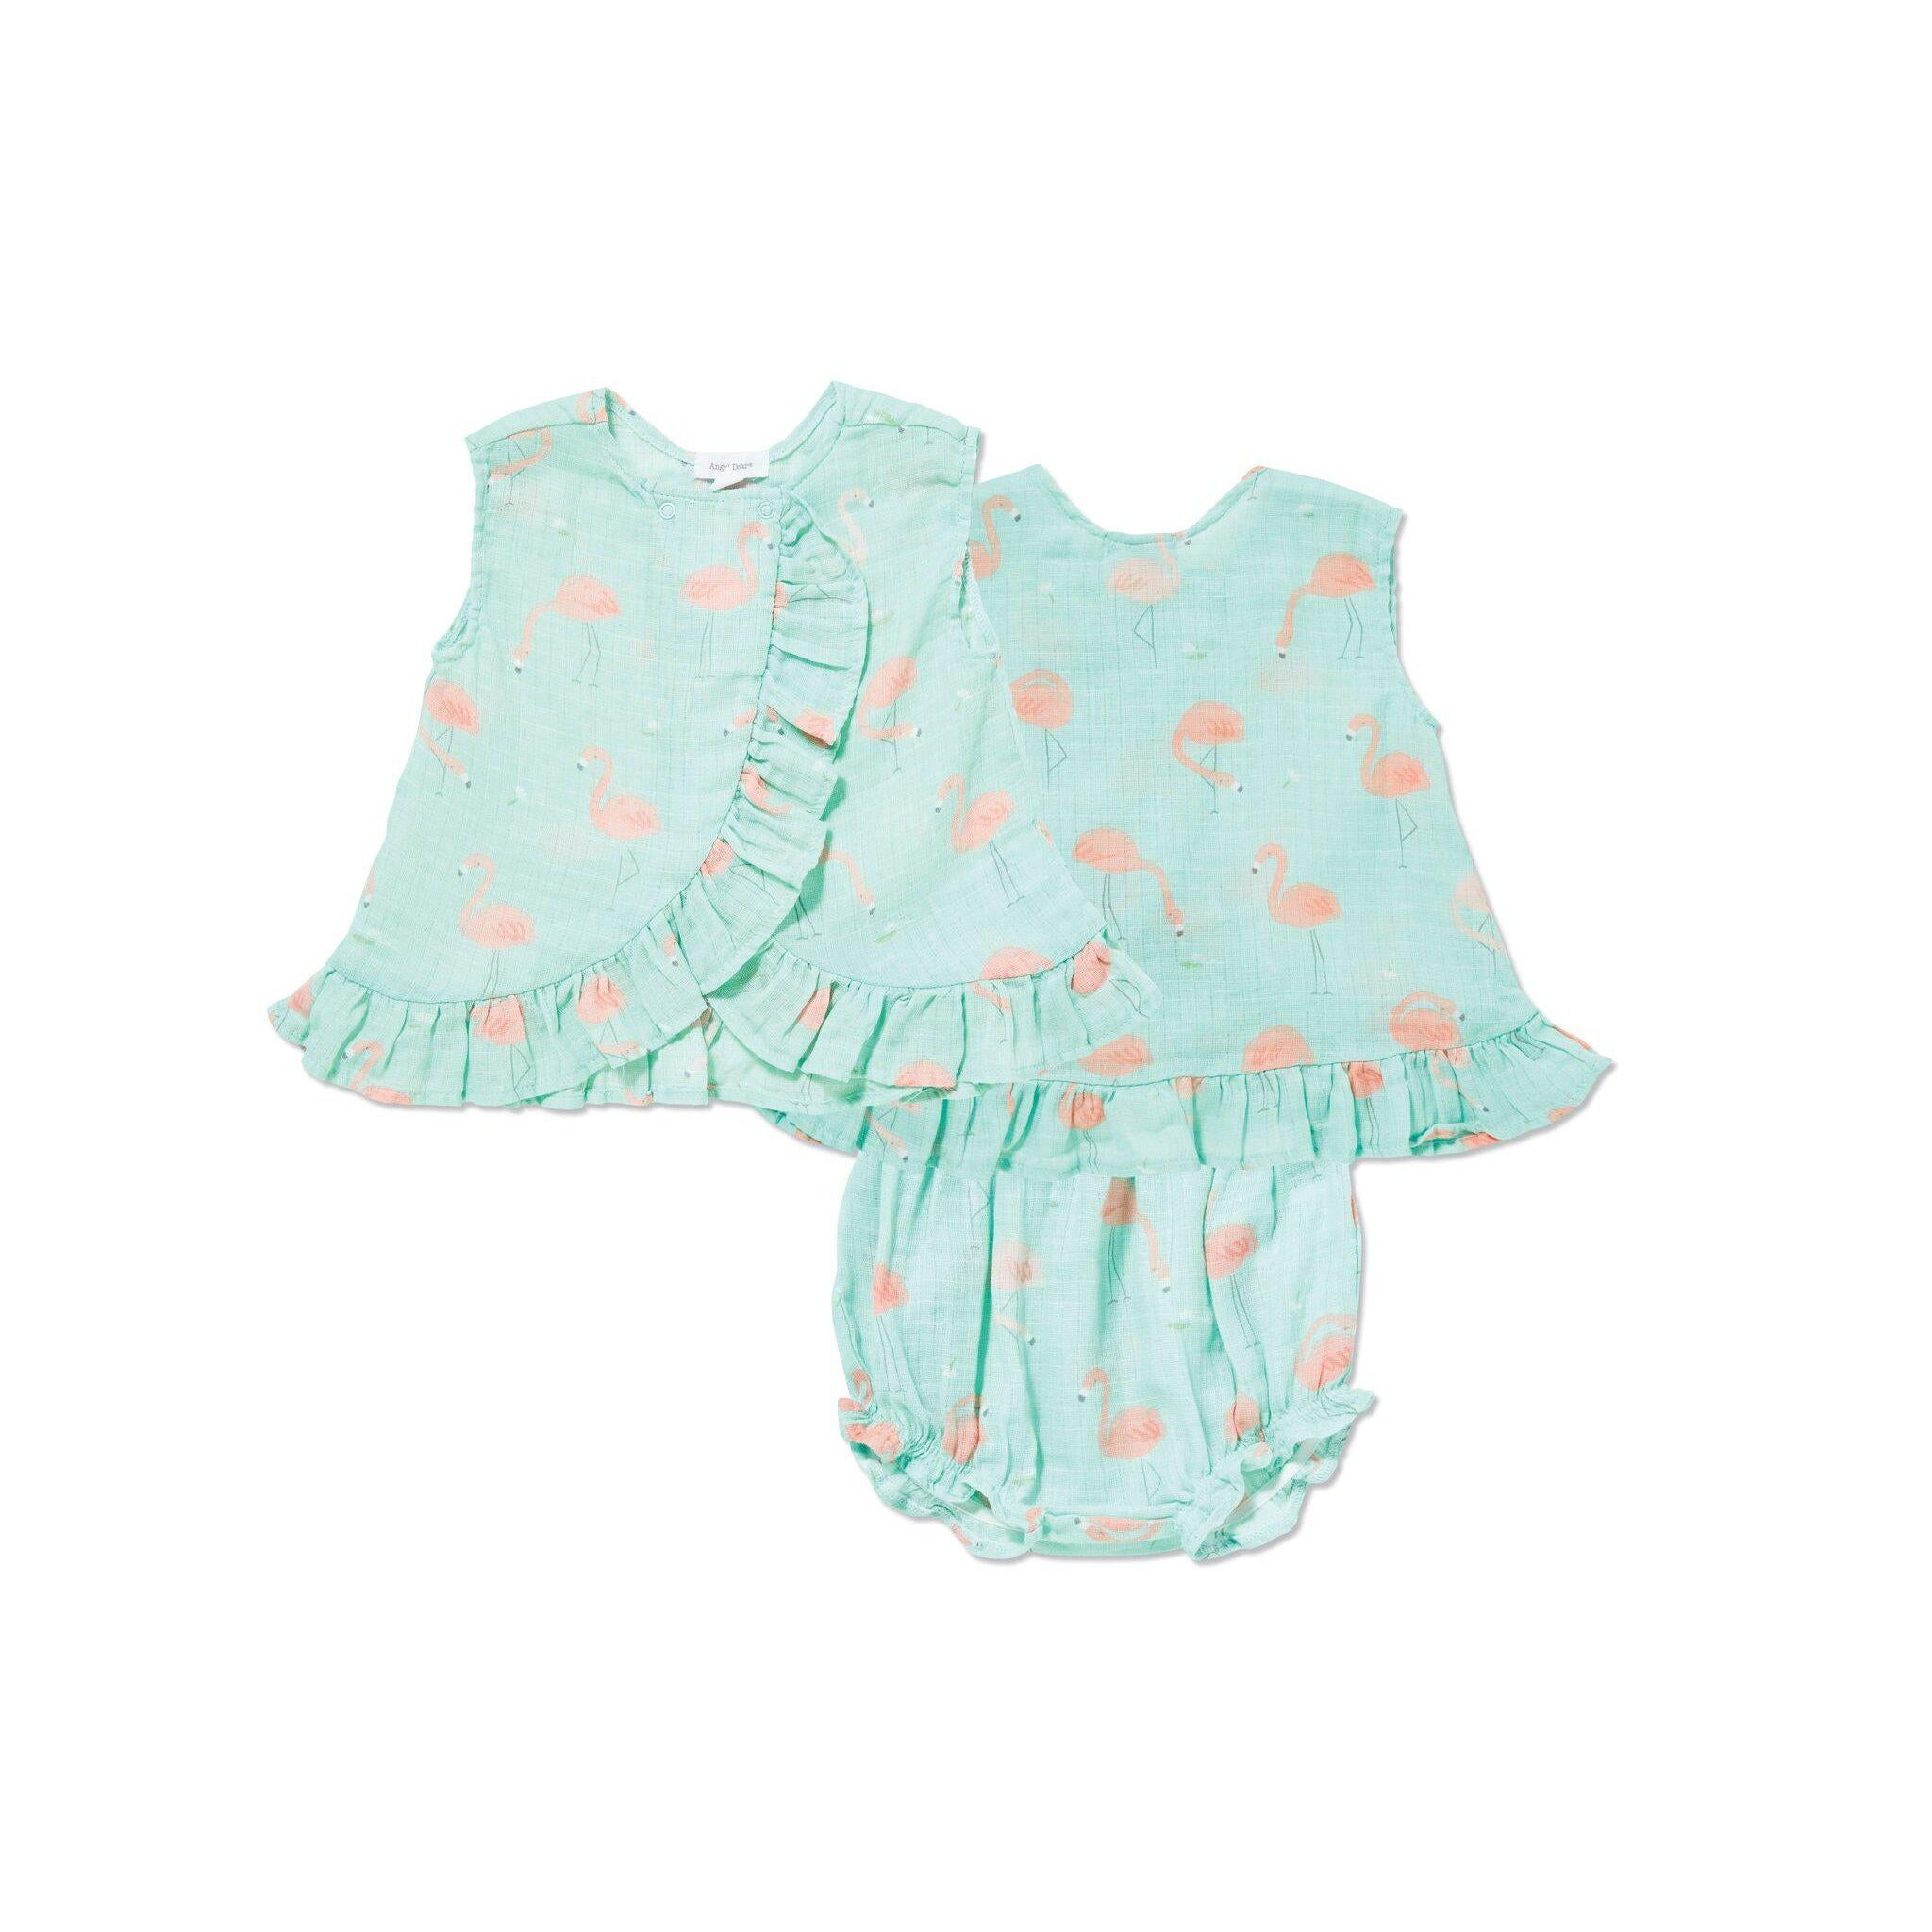 59e4ed15d88 Angel Dear Muslin Ruffle Back Top and Romper - Flamingo-Baby Girl Apparel -  Outfit